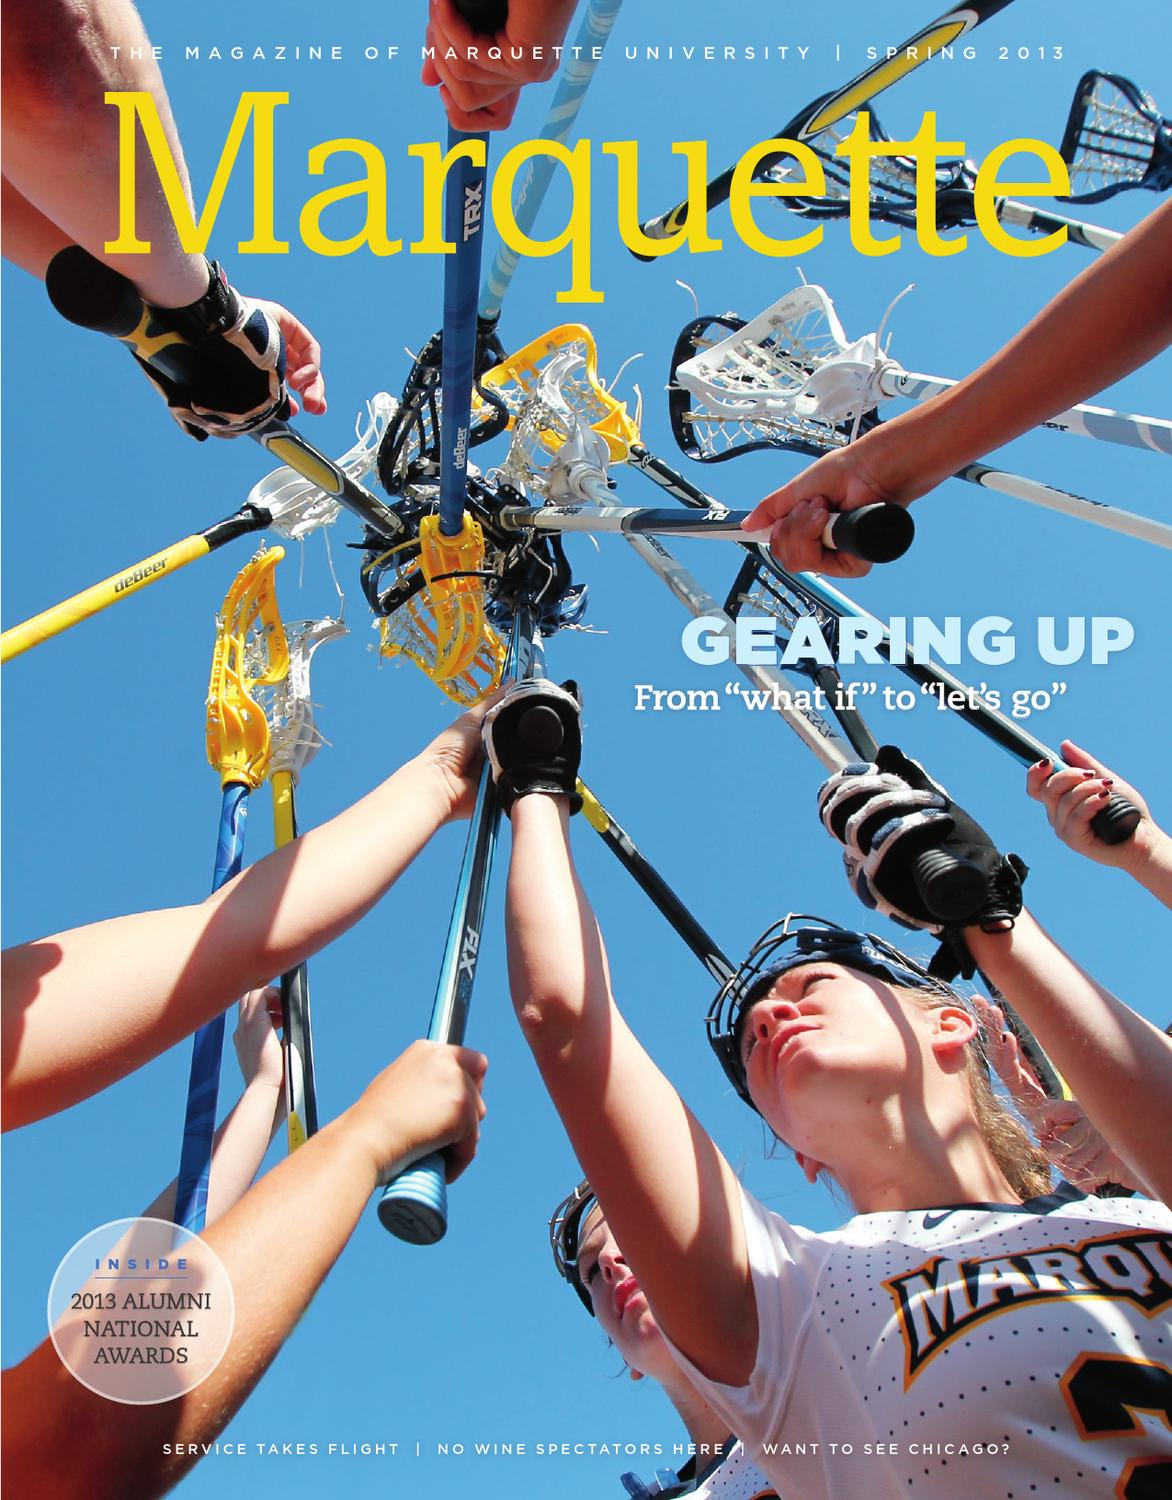 DePaul or Marquette? WHY ARE COLLEGE DECISIONS SO DIFFICULT?